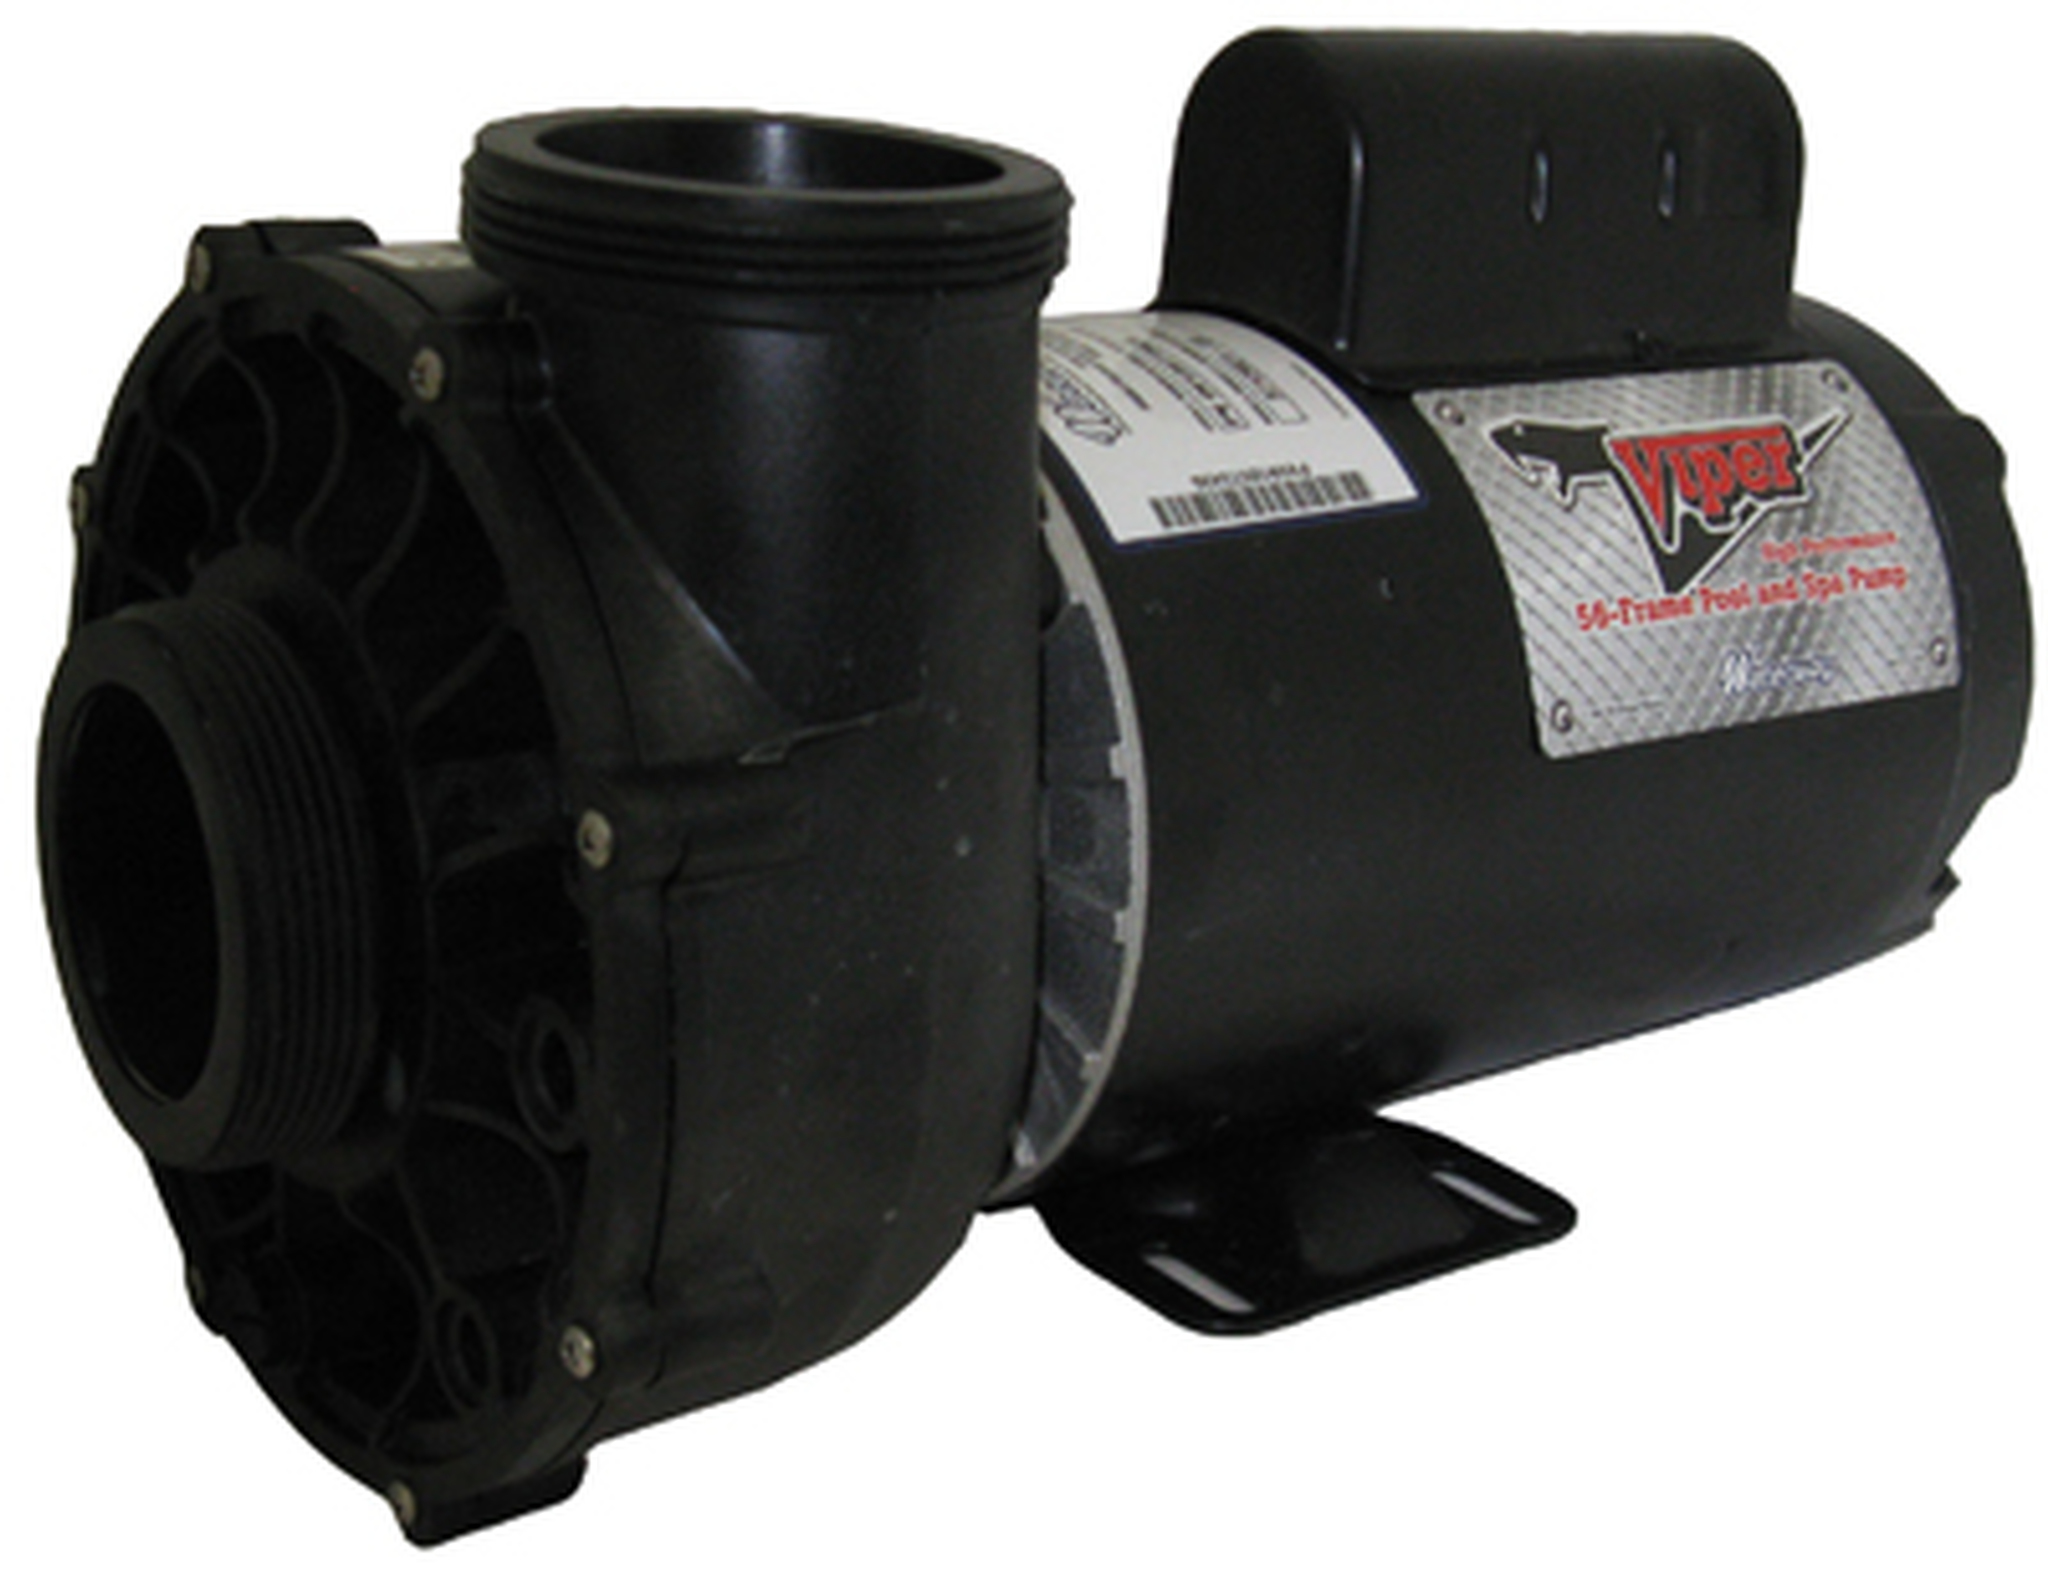 Waterway Viper Pumps & Parts